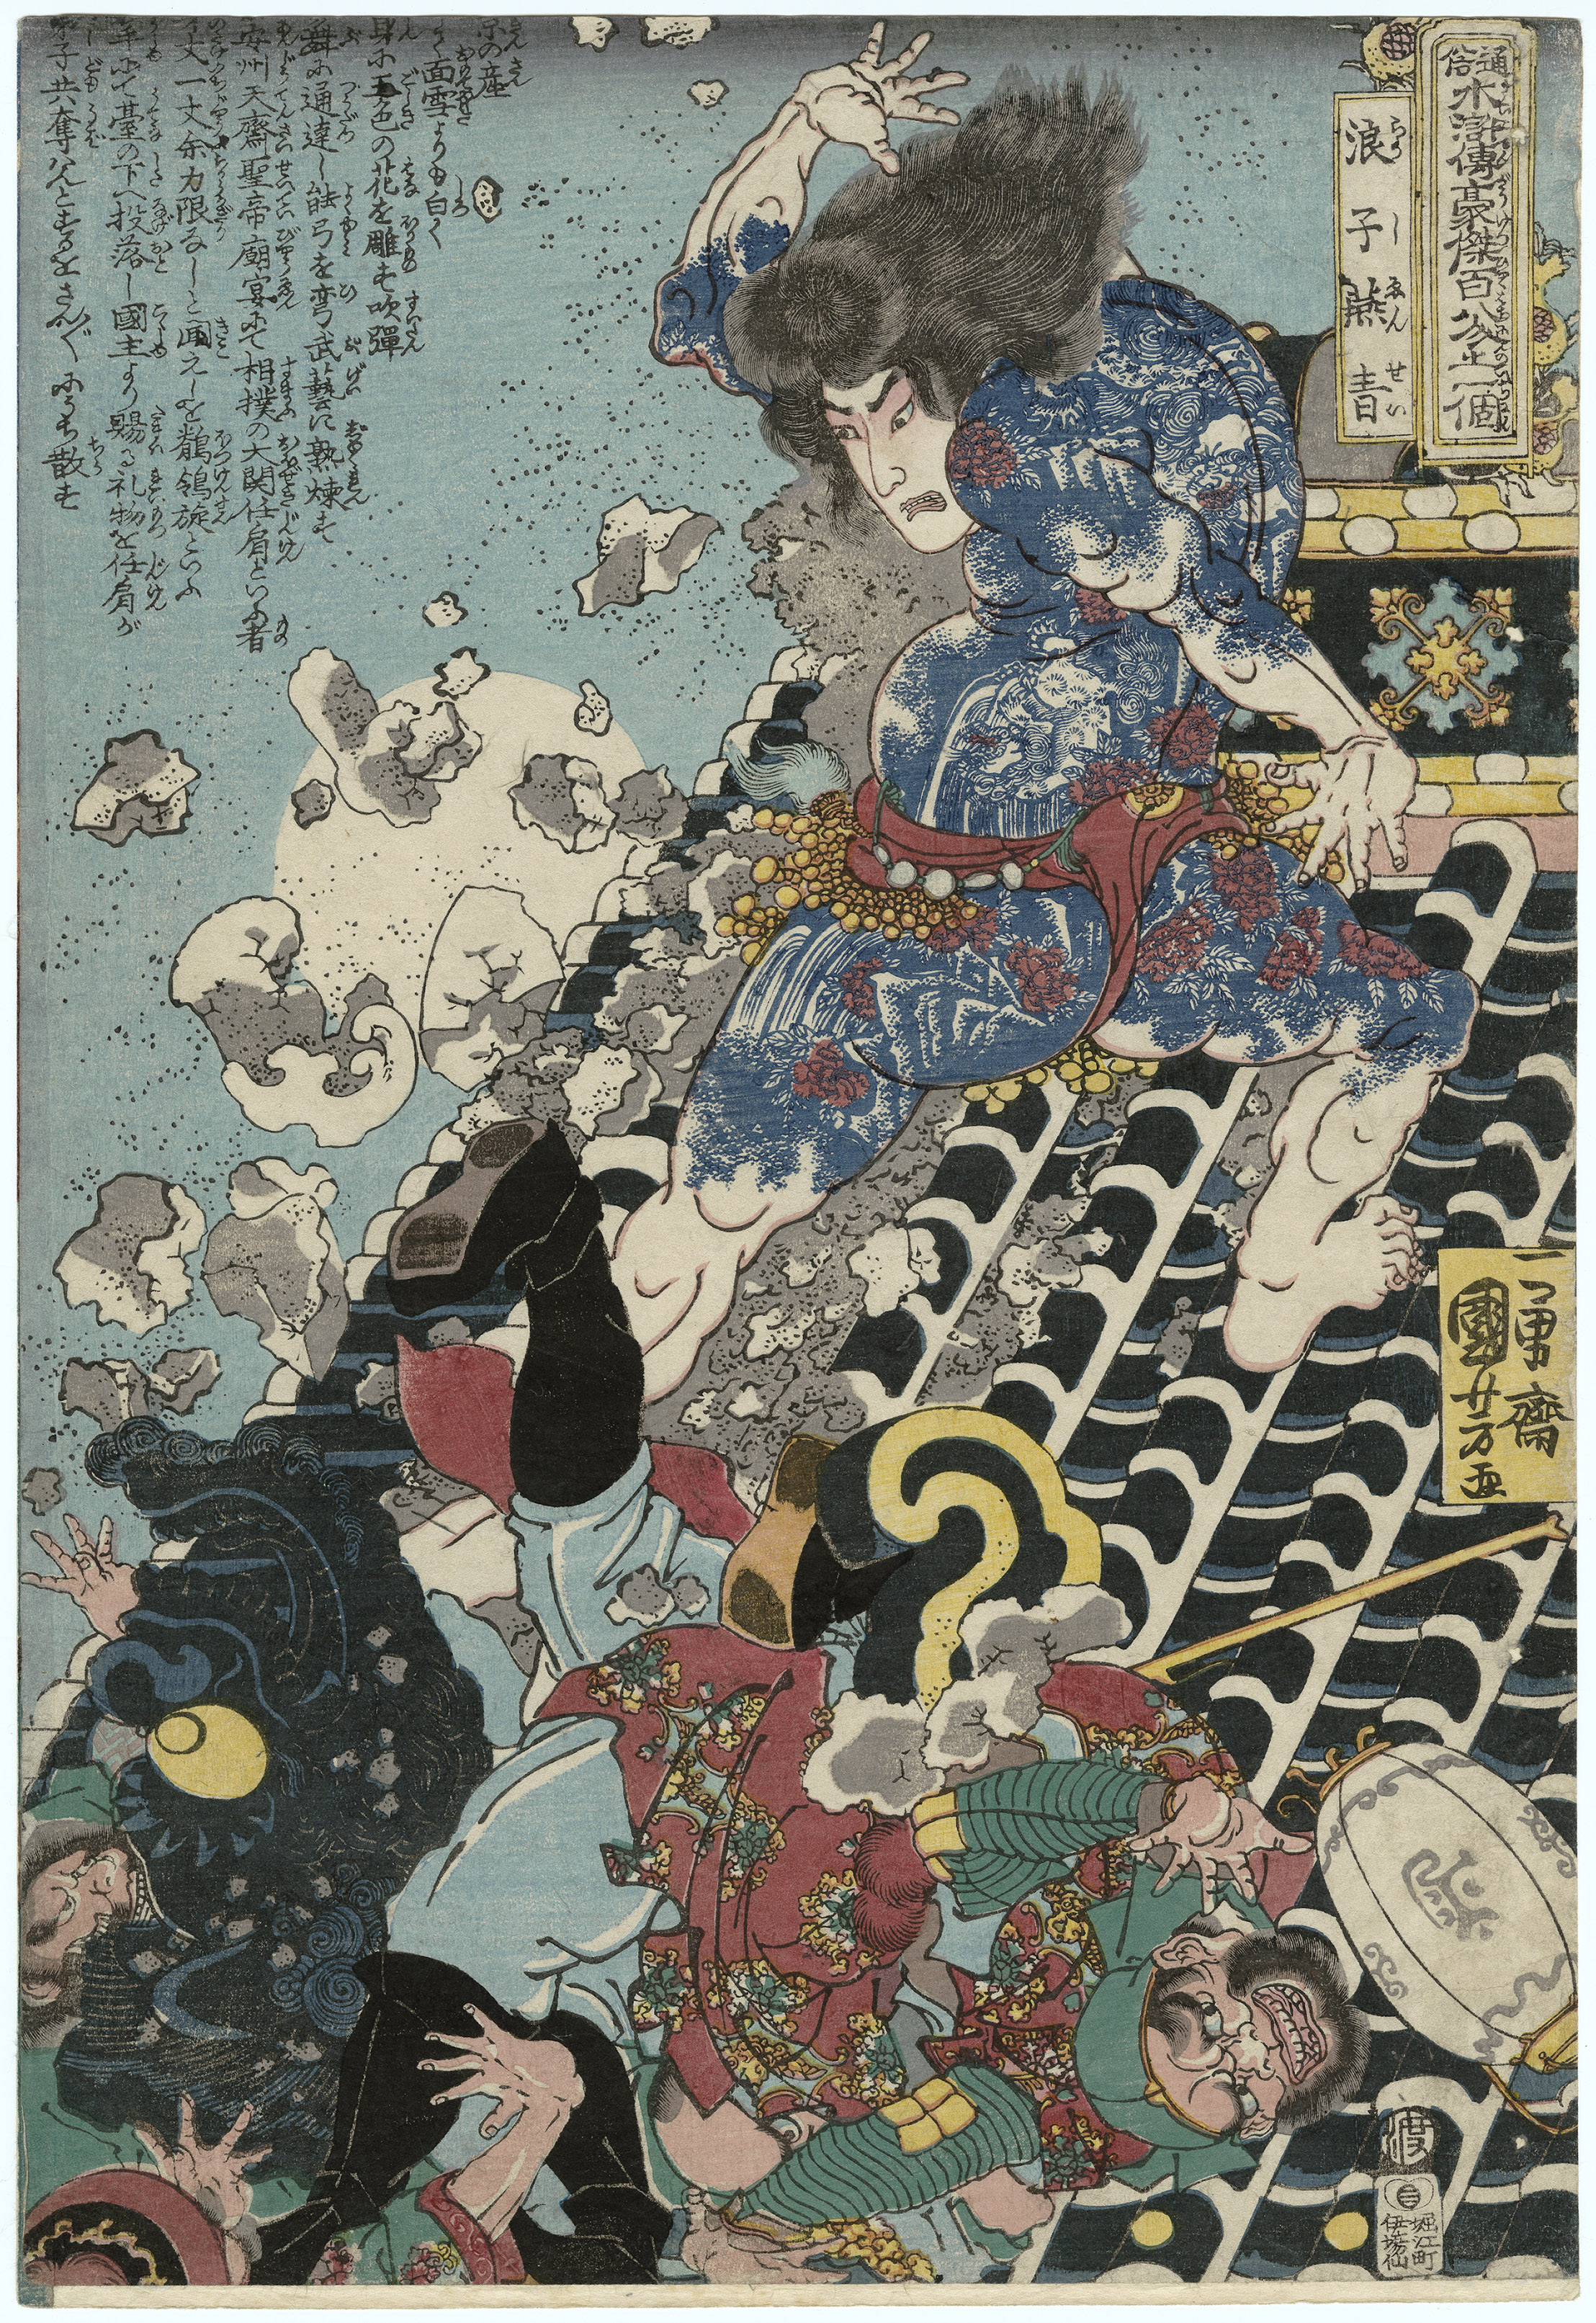 """""""Yan Qing, the Graceful"""" is adorned with tattoos of lions, peonies, and waterfalls in this print from the series """"108 Heroes of the Popular Water Margin"""" by Utagawa Kuniyoshi, c. late 1820s and reprinted around 1843-47. ©<a href=""""http://www.mfa.org/"""">Museum of Fine Arts, Boston</a>."""